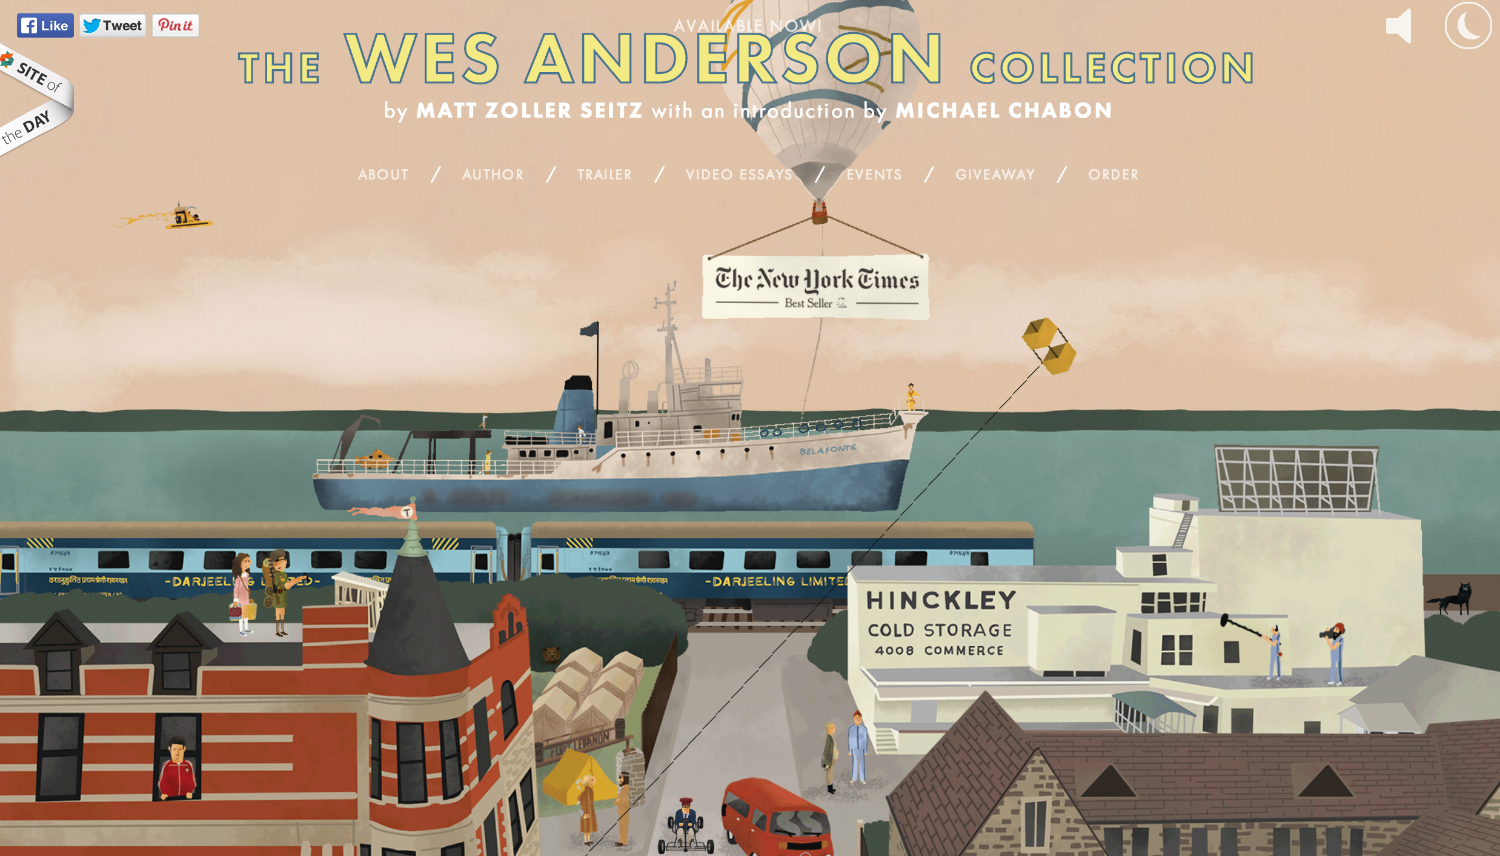 The Wes Anderson Collection Home Page